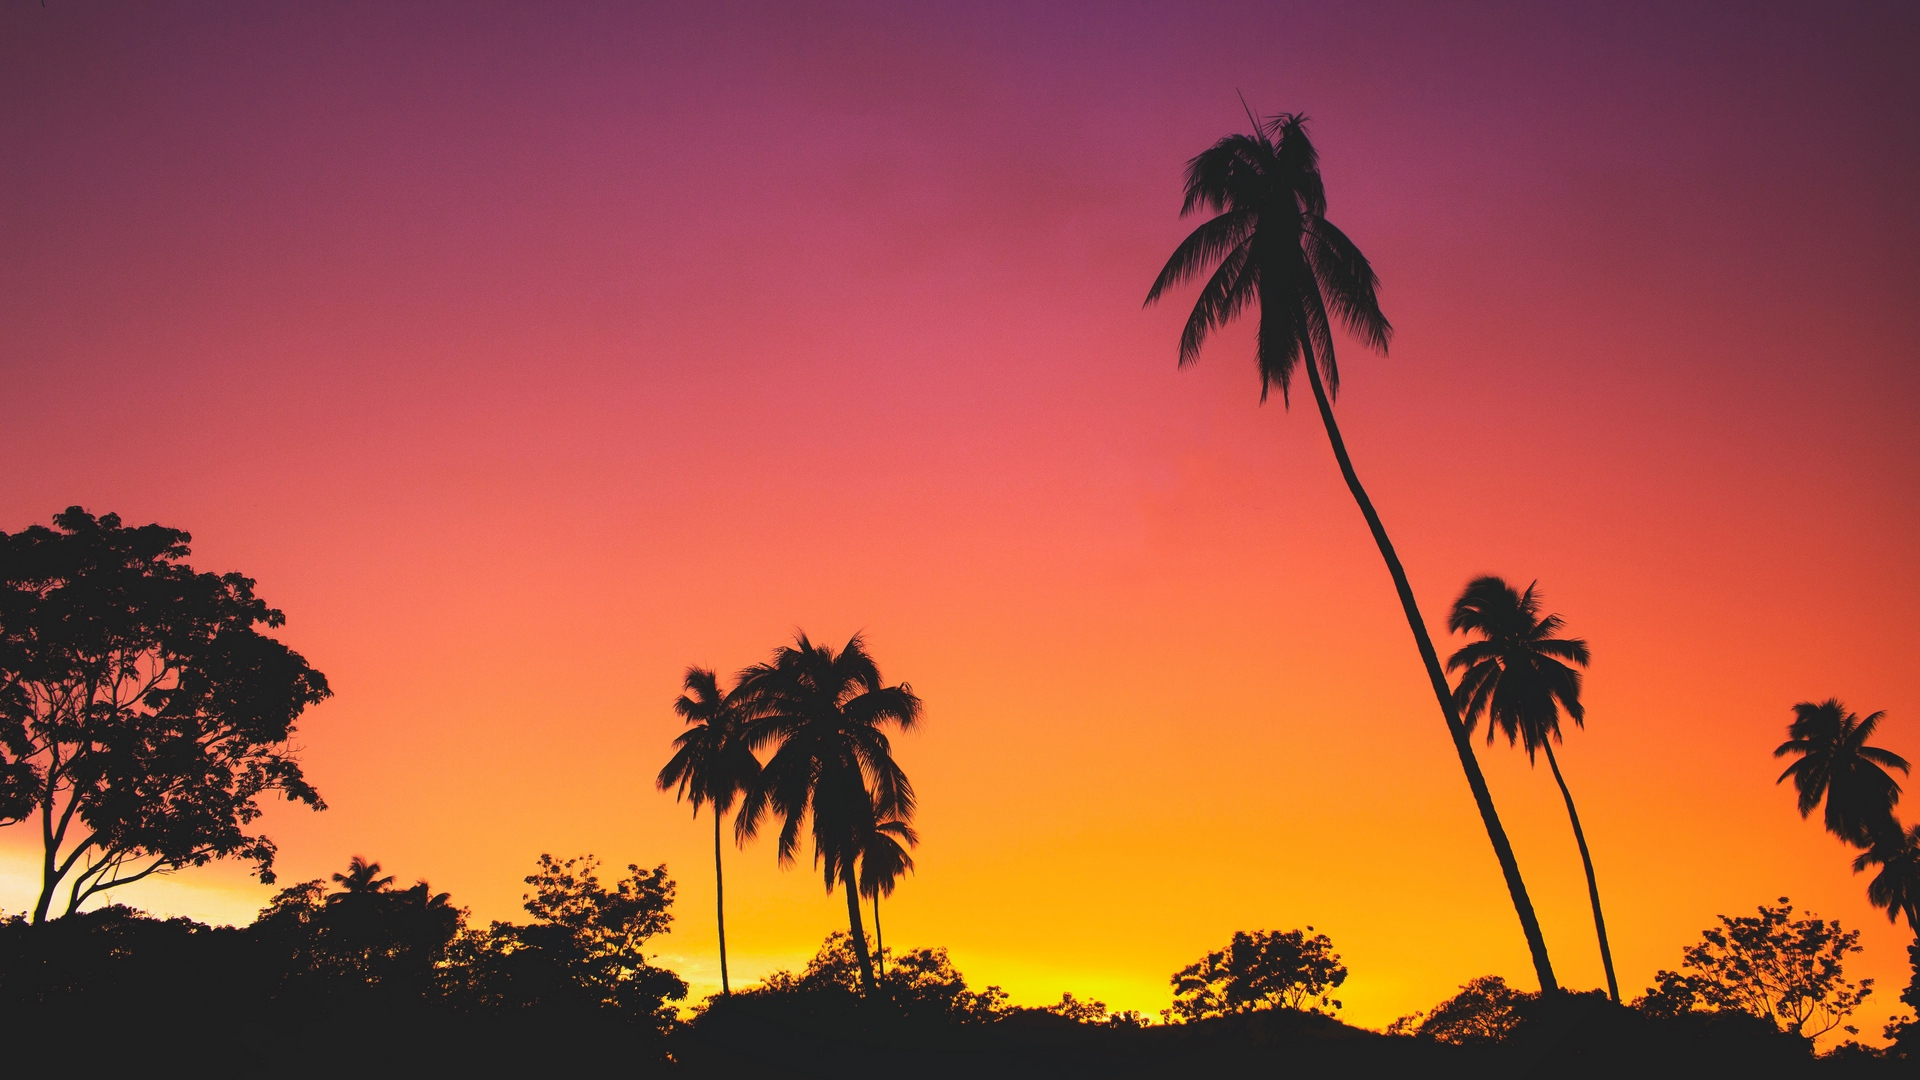 palms sunset silhouettes